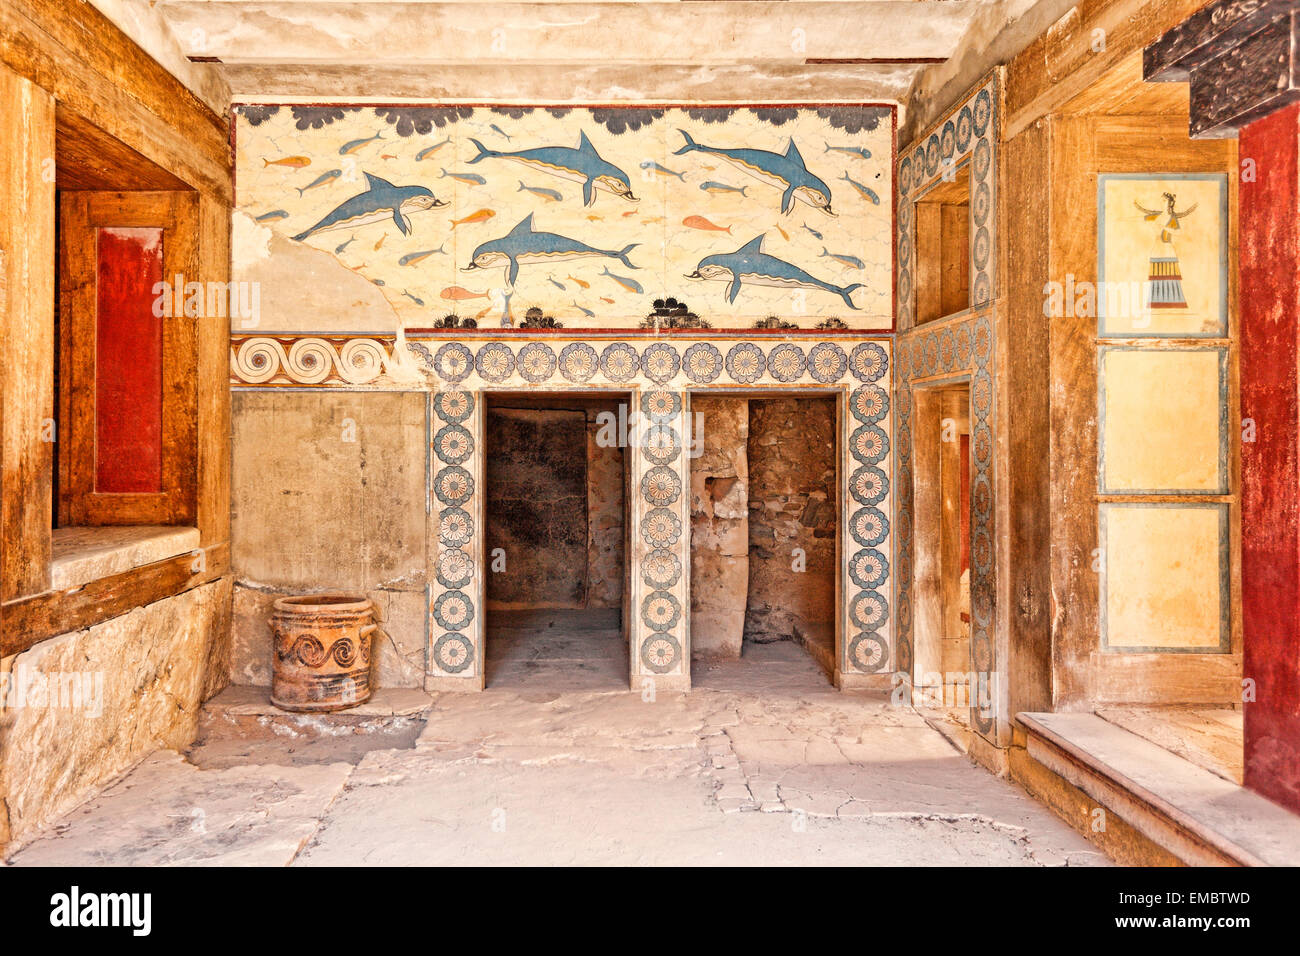 The Hall of the double Axes and the Queen's Megaron of the Palace in Knossos at Crete, Greece - Stock Image